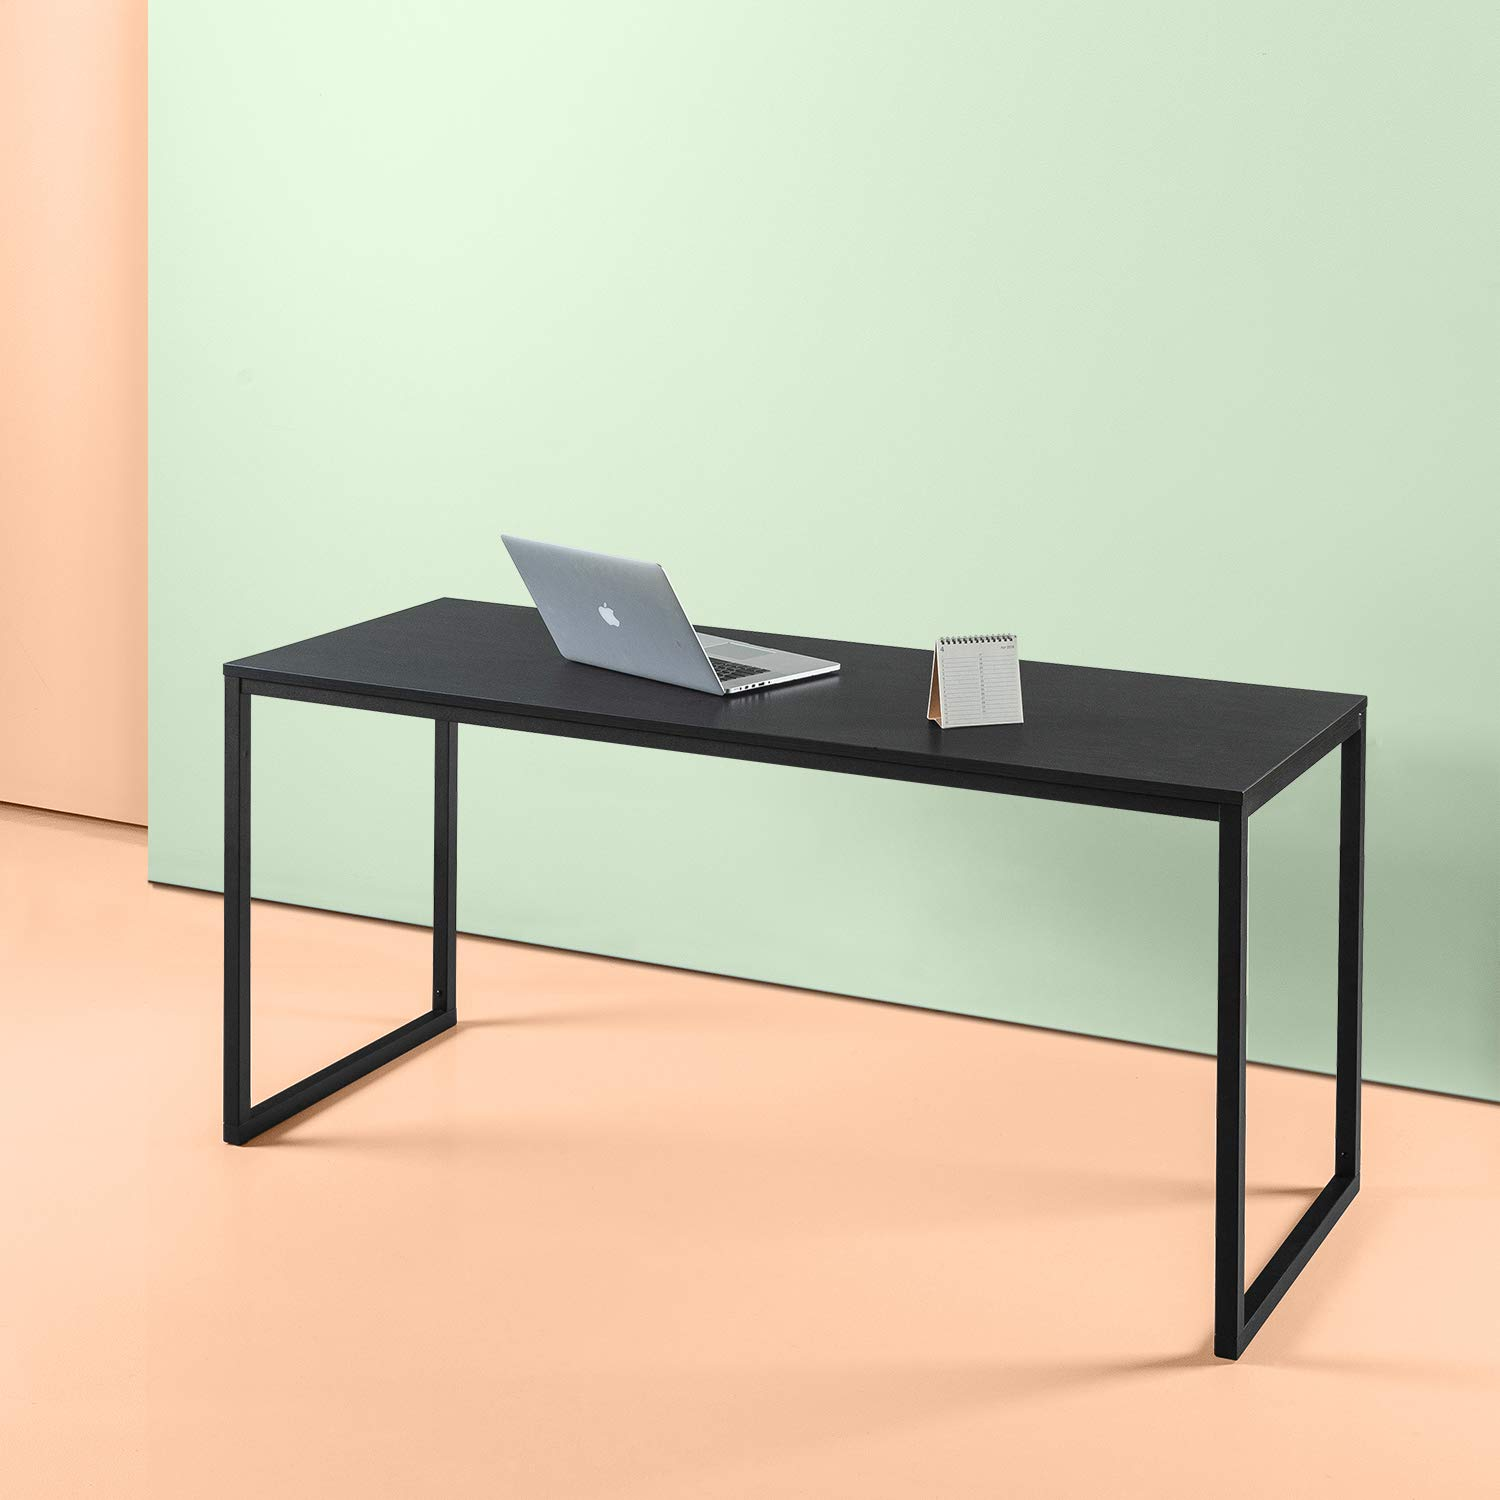 Zinus Modern Studio Collection Soho Desk / Table / Computer Table, Espresso OLB-DS-4724B